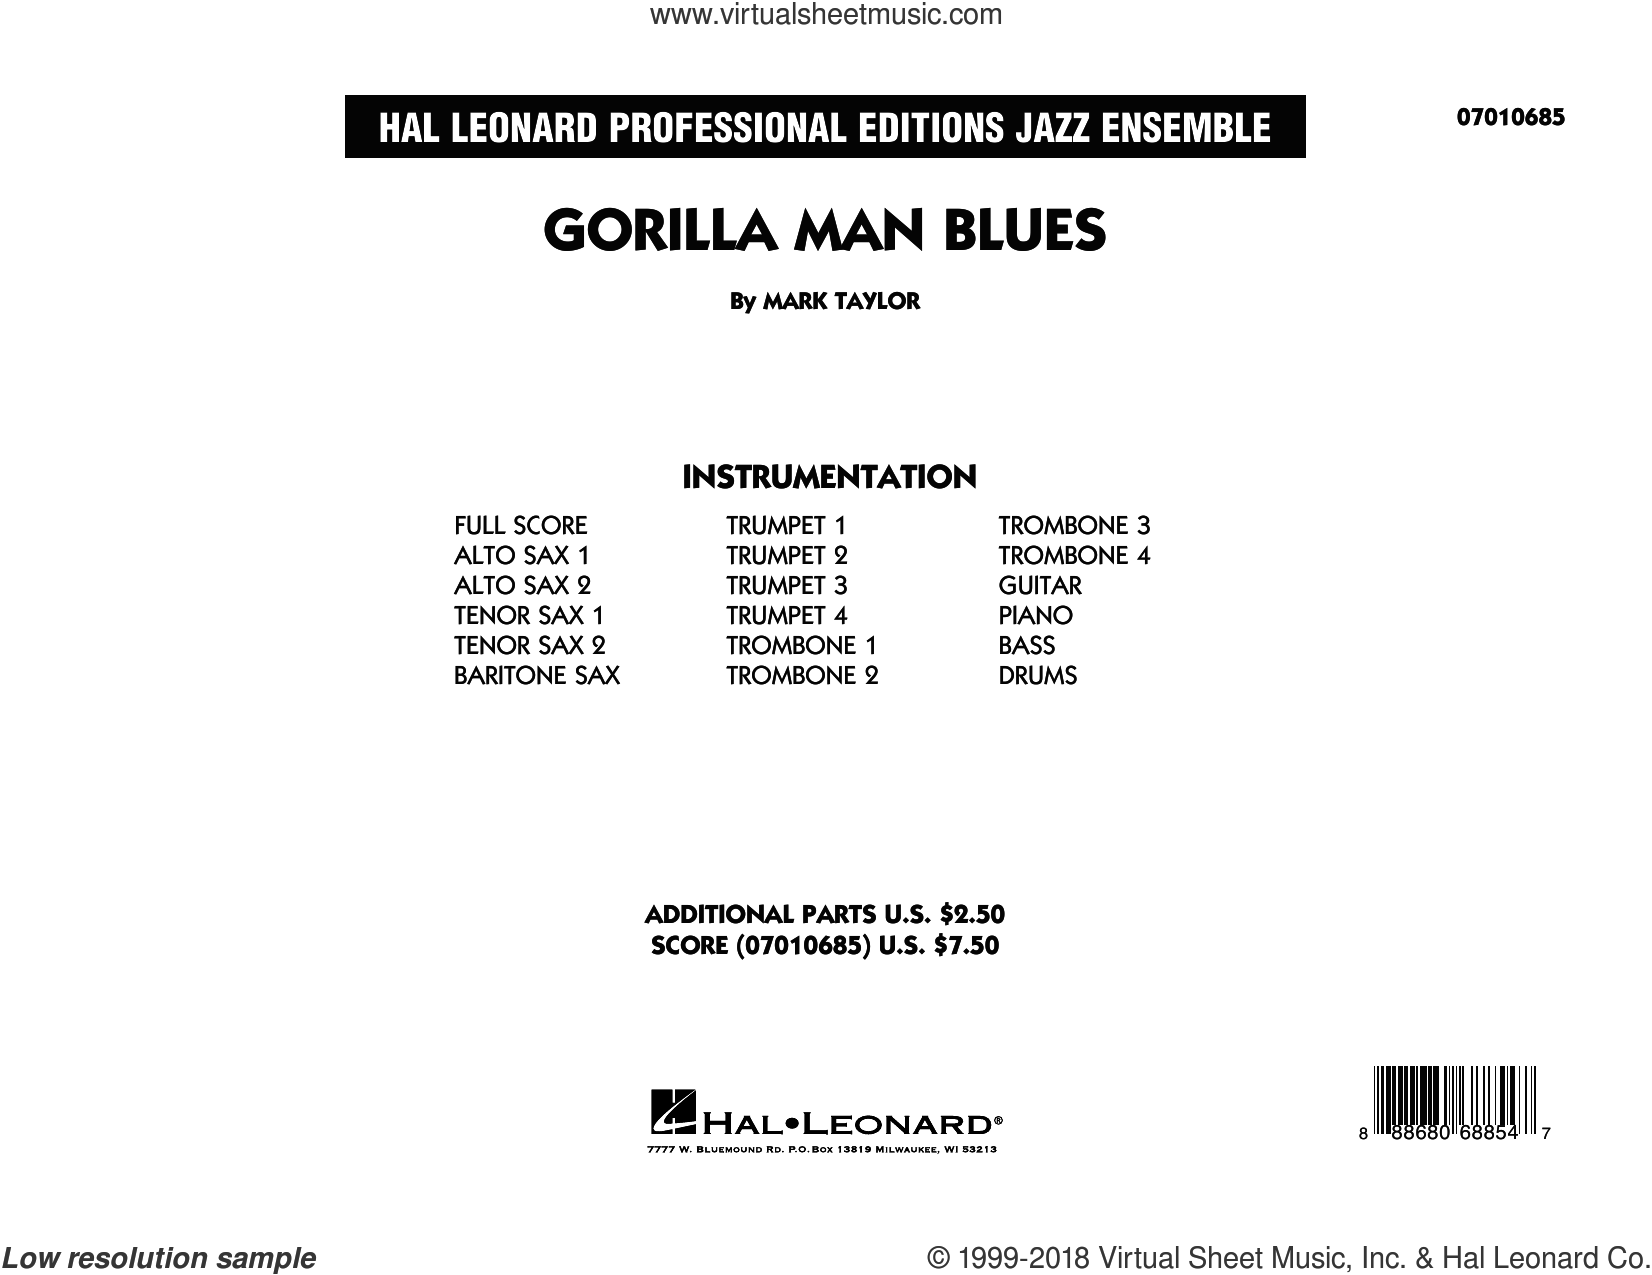 Taylor - Gorilla Man Blues sheet music (complete collection) for jazz band